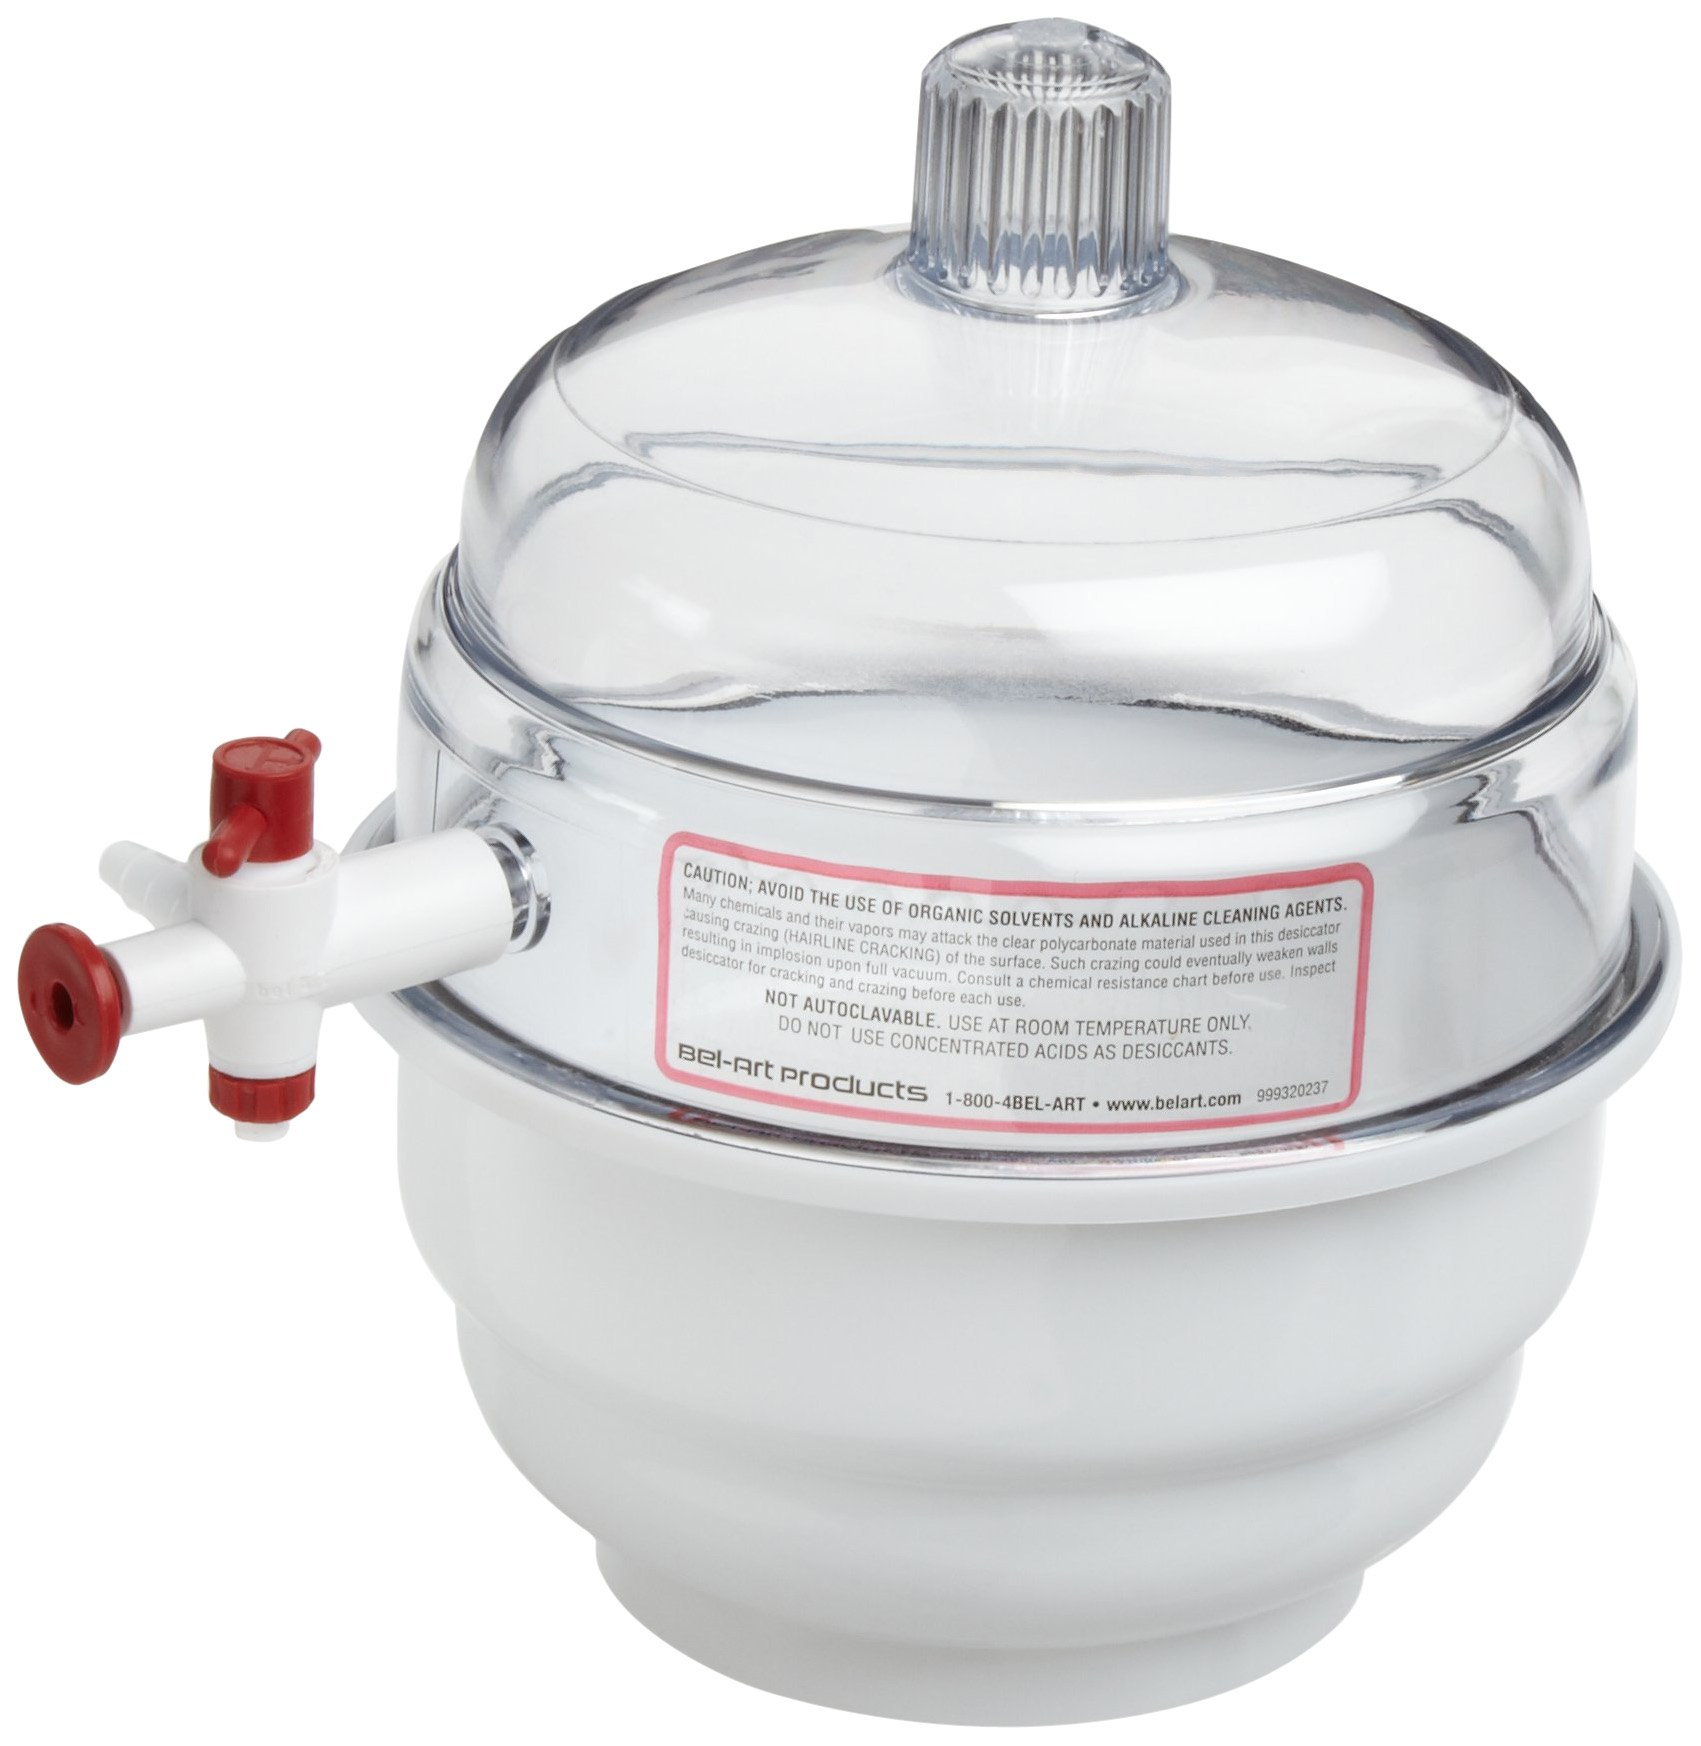 Bel-Art SPACE SAVER Polycarbonate Vacuum Desiccator with White Polypropylene Bottom; 0.09 cu. ft. (F42010-0000) by SP Scienceware (Image #2)